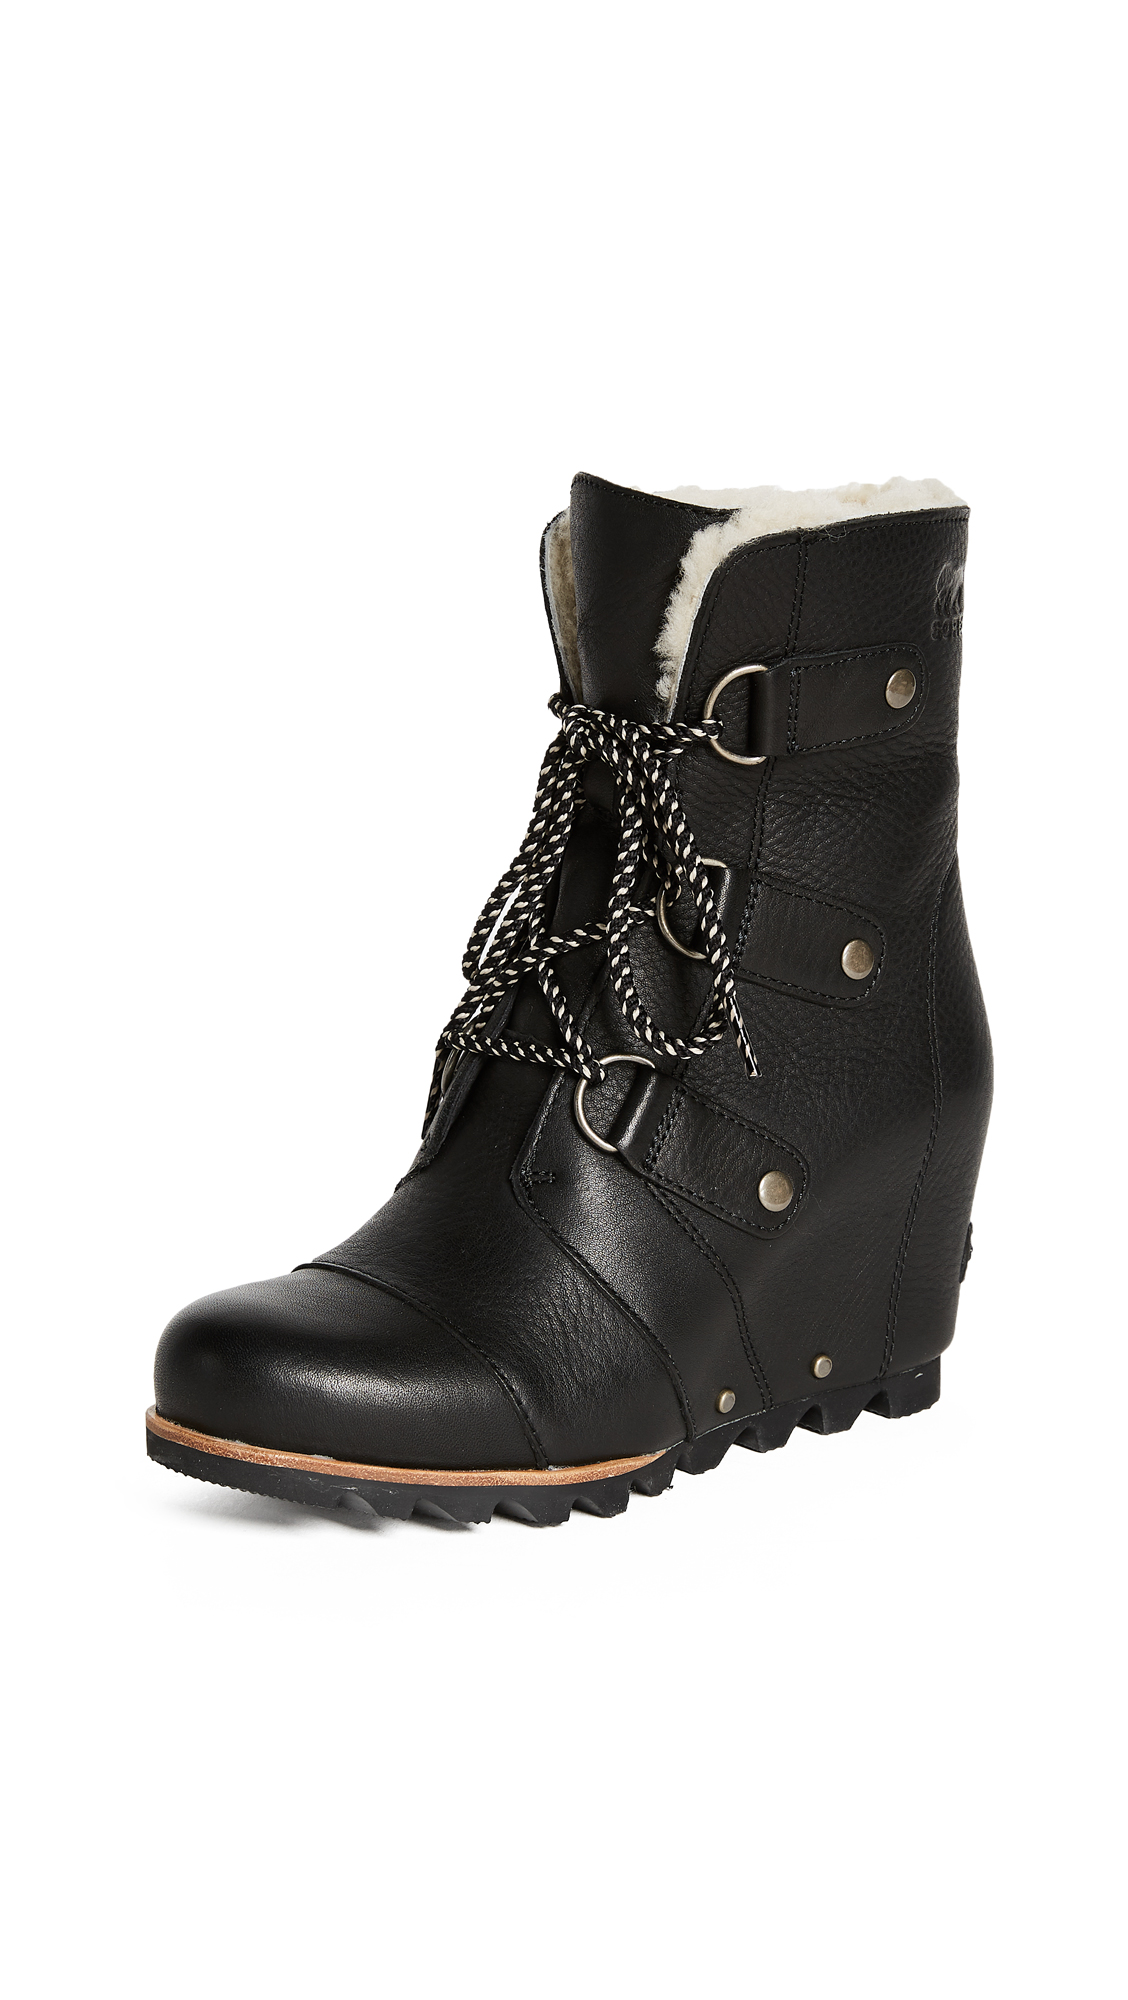 Sorel Joan of Arctic Wedge Mid Shearling Boot - Black/Ancient Fossil